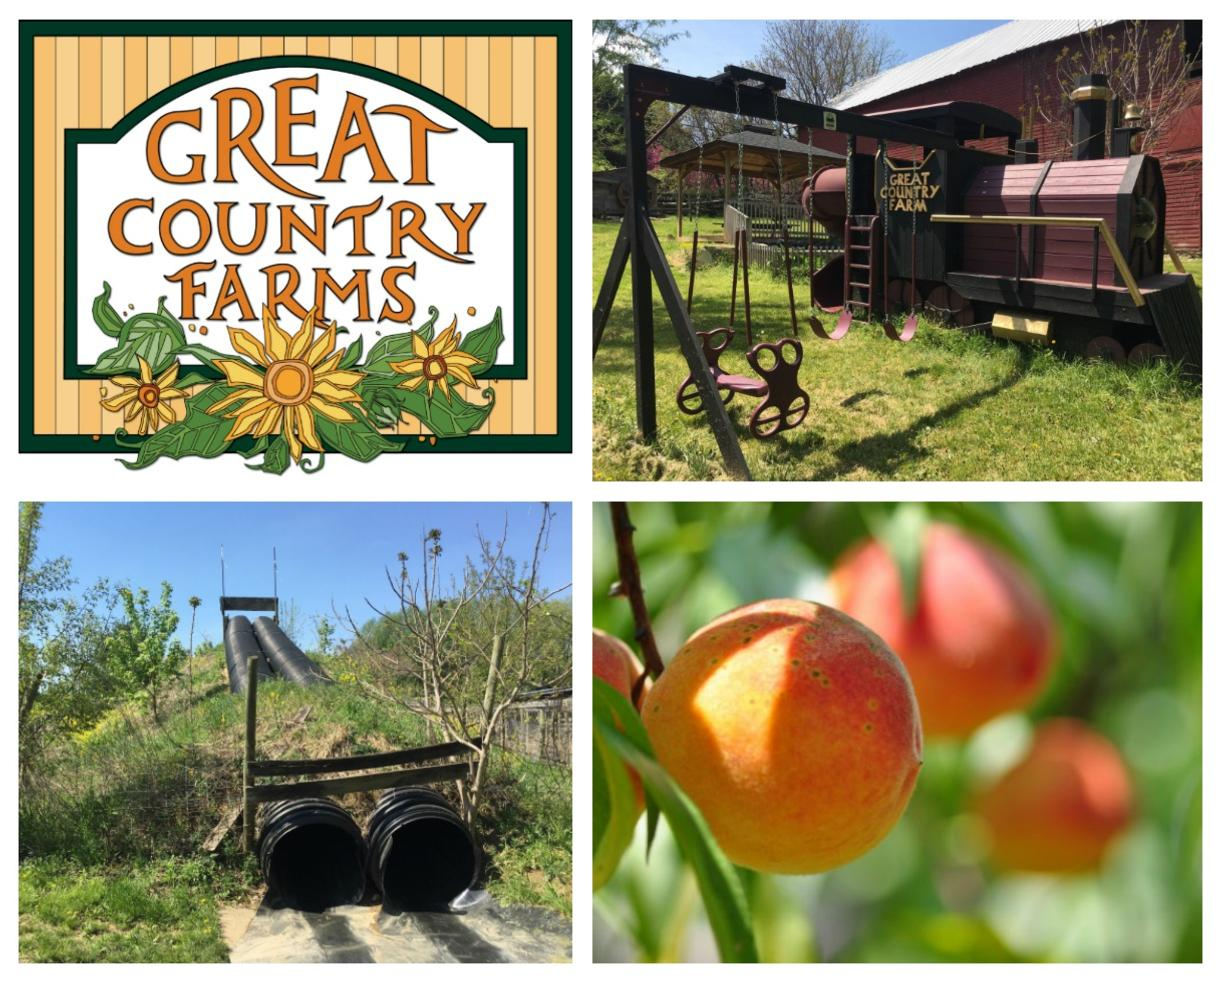 Great Country Farms Summer Admission & PEACH PICKING!!